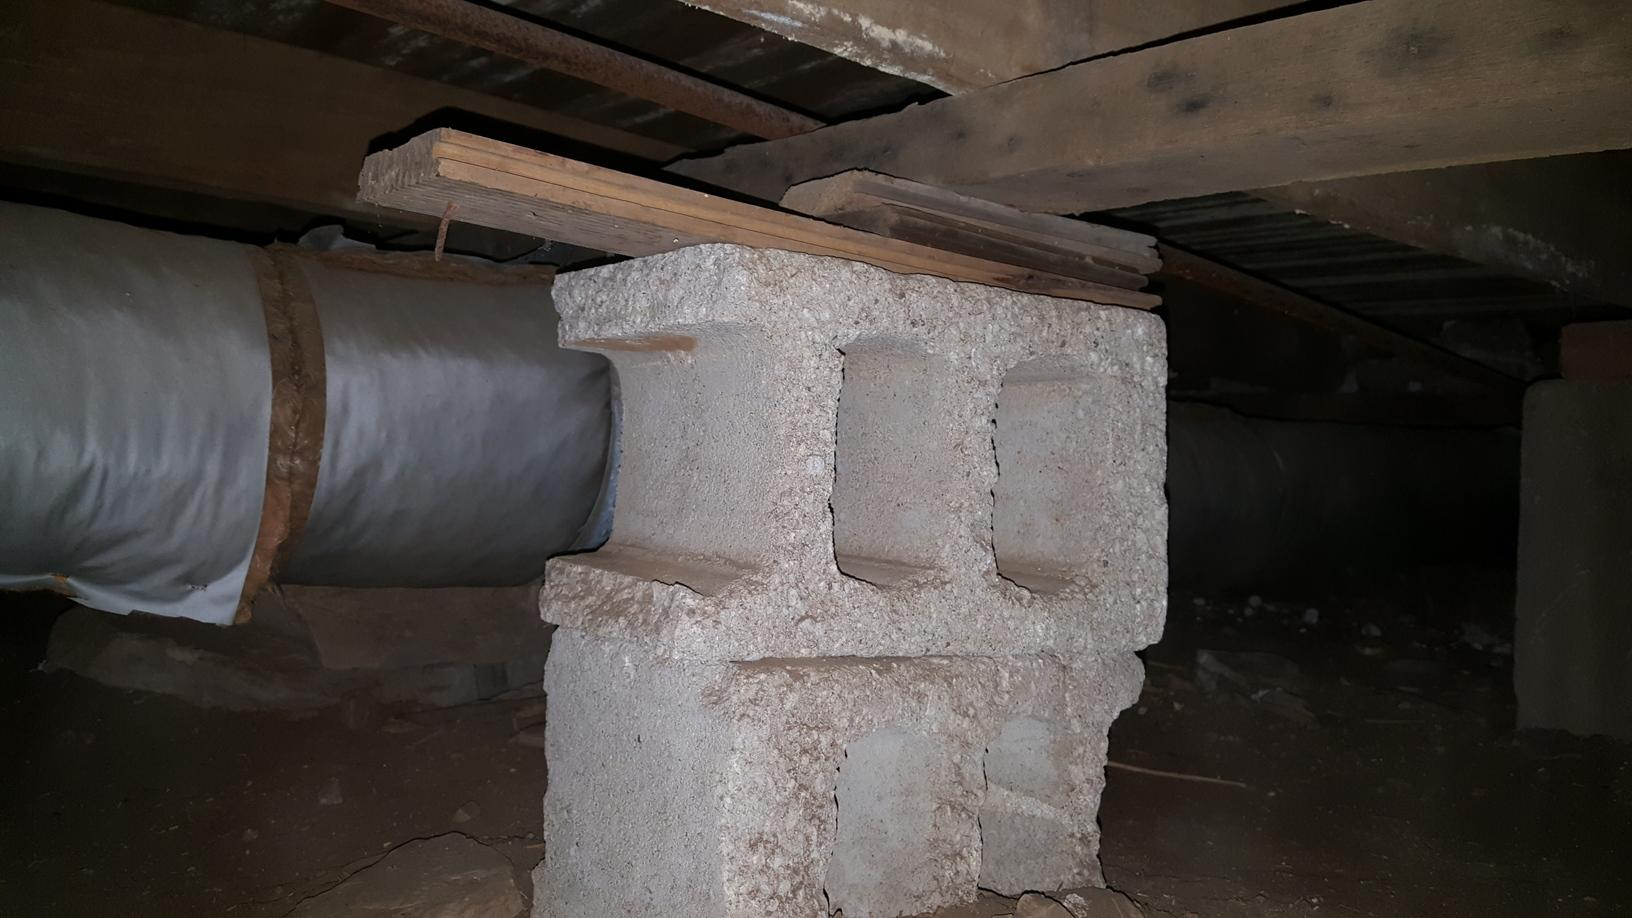 Many attempts in the past to shim or lift the floor framing was left with unstable concrete blocks not intended to fully support the home.